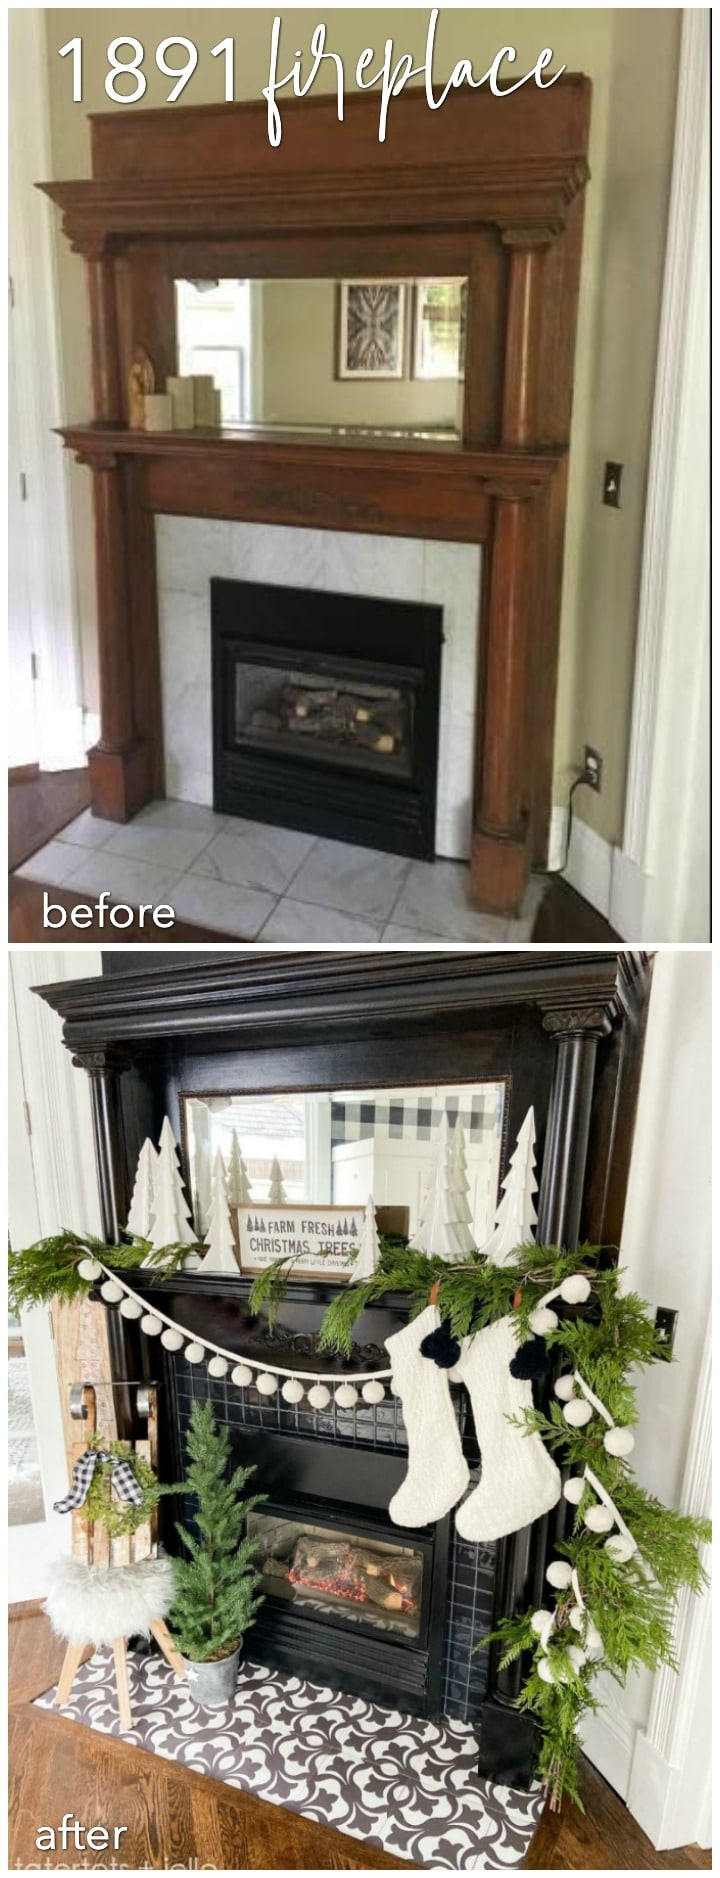 1891 vintage fireplace makeover before and after restoration for less than $200.